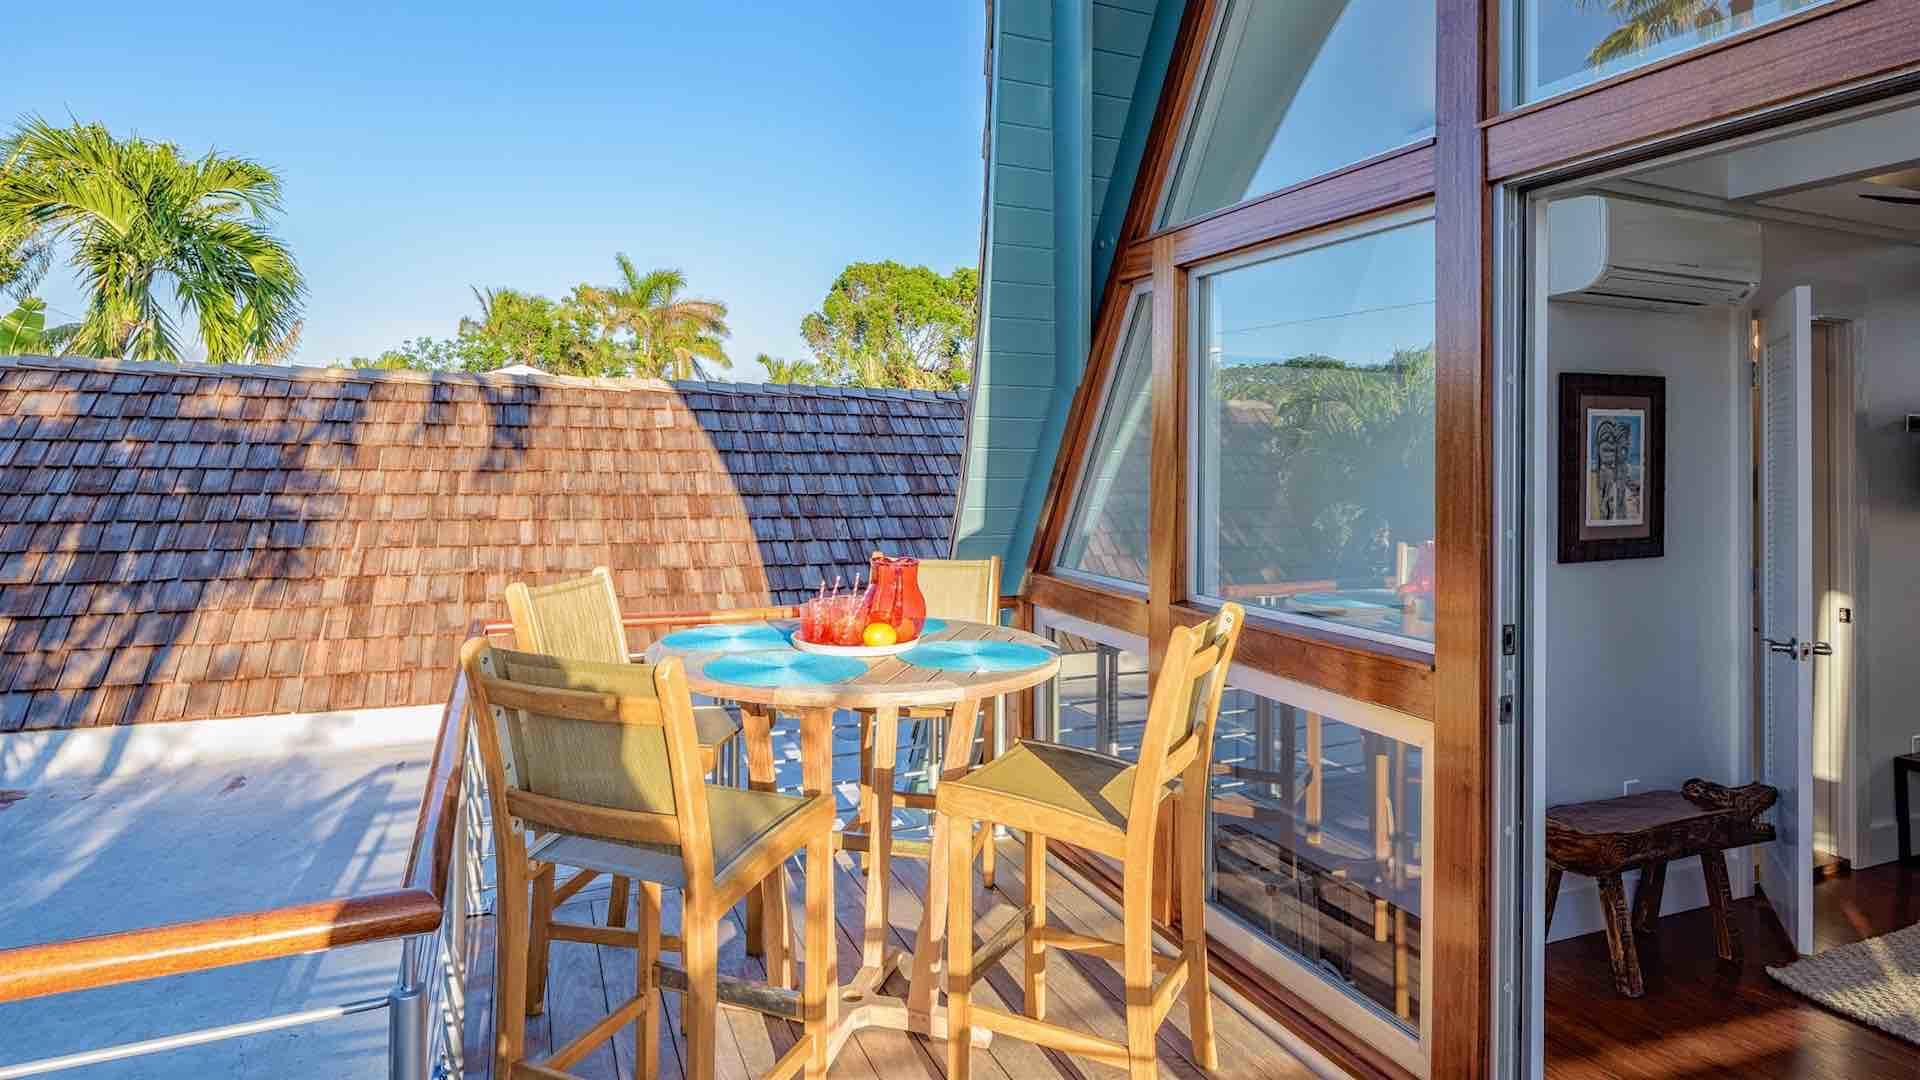 An outdoor dining table for four is located on the roof just outside the fourth bedroom...